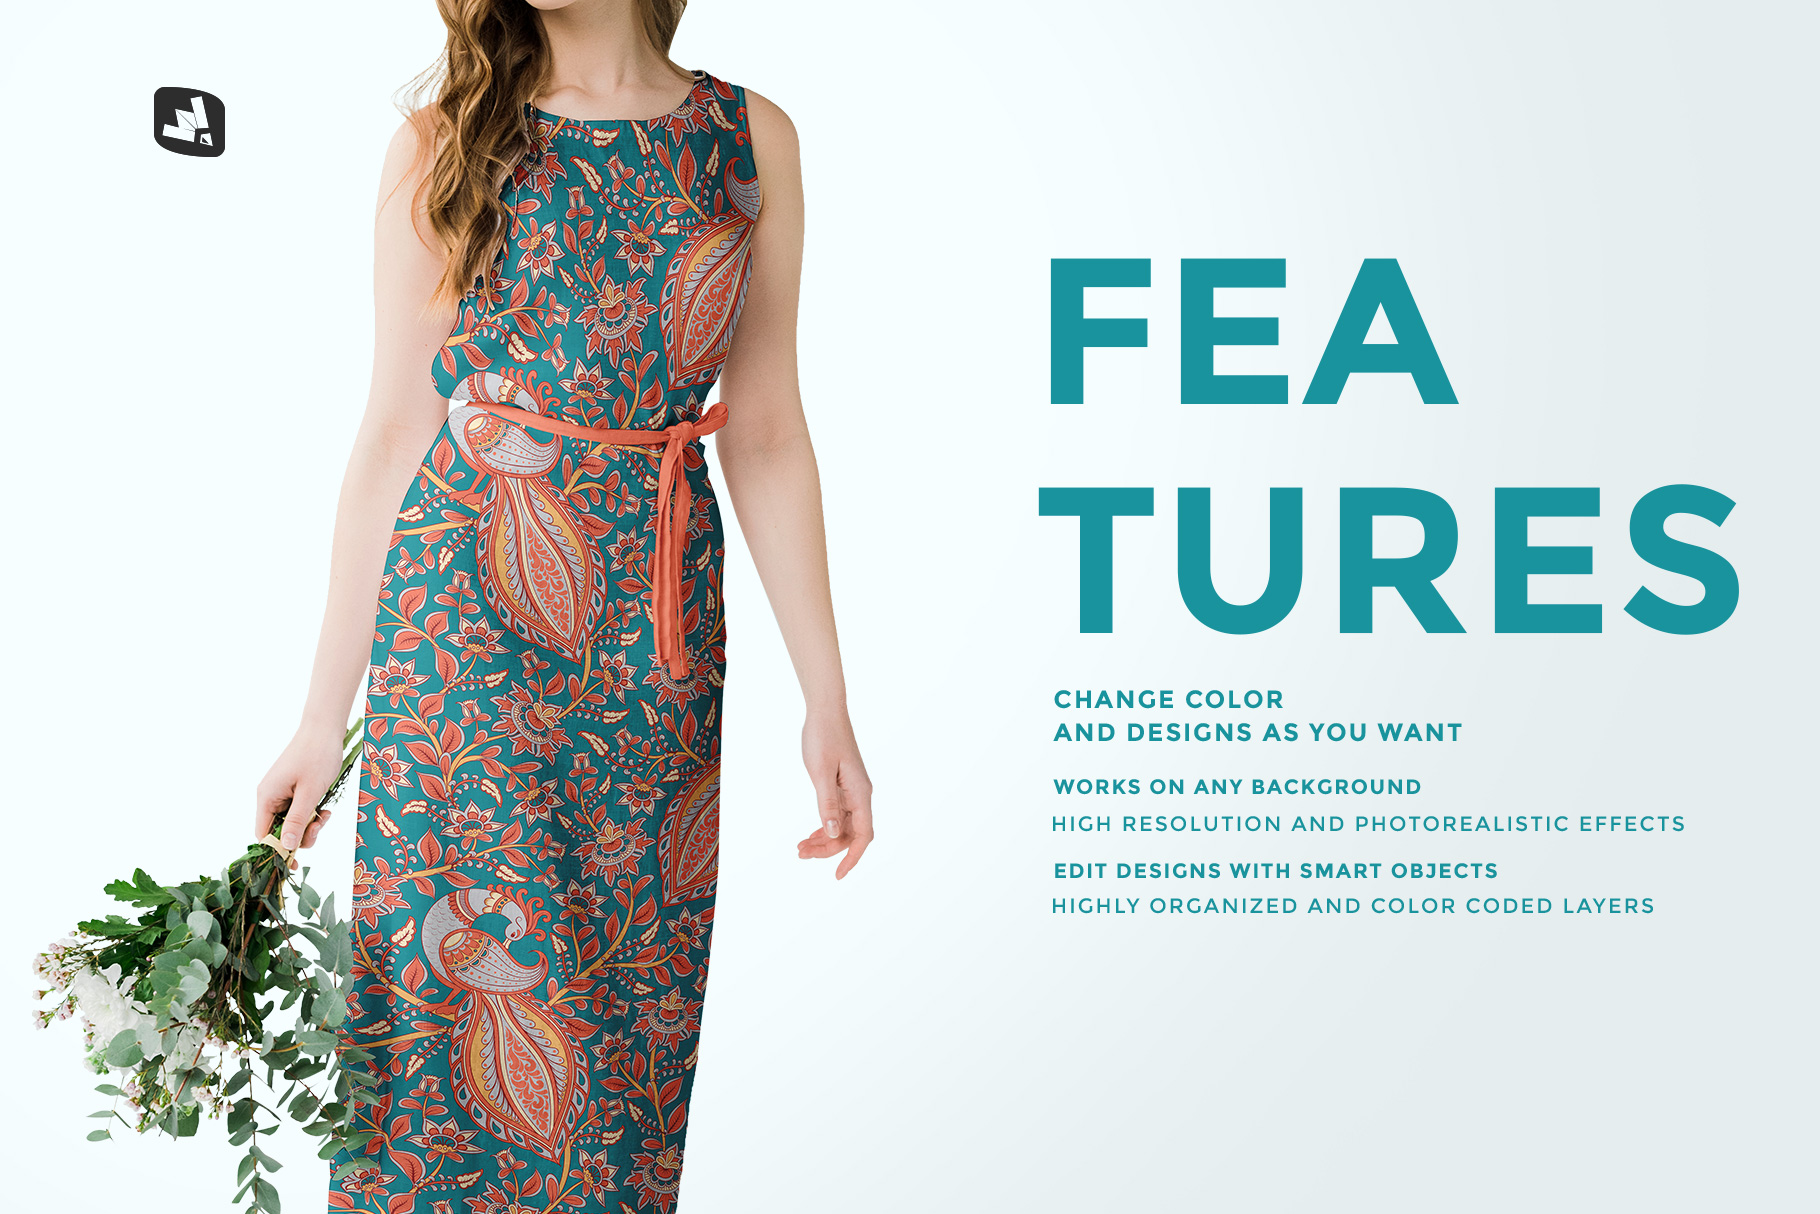 features of the female cotton summer dress mockup